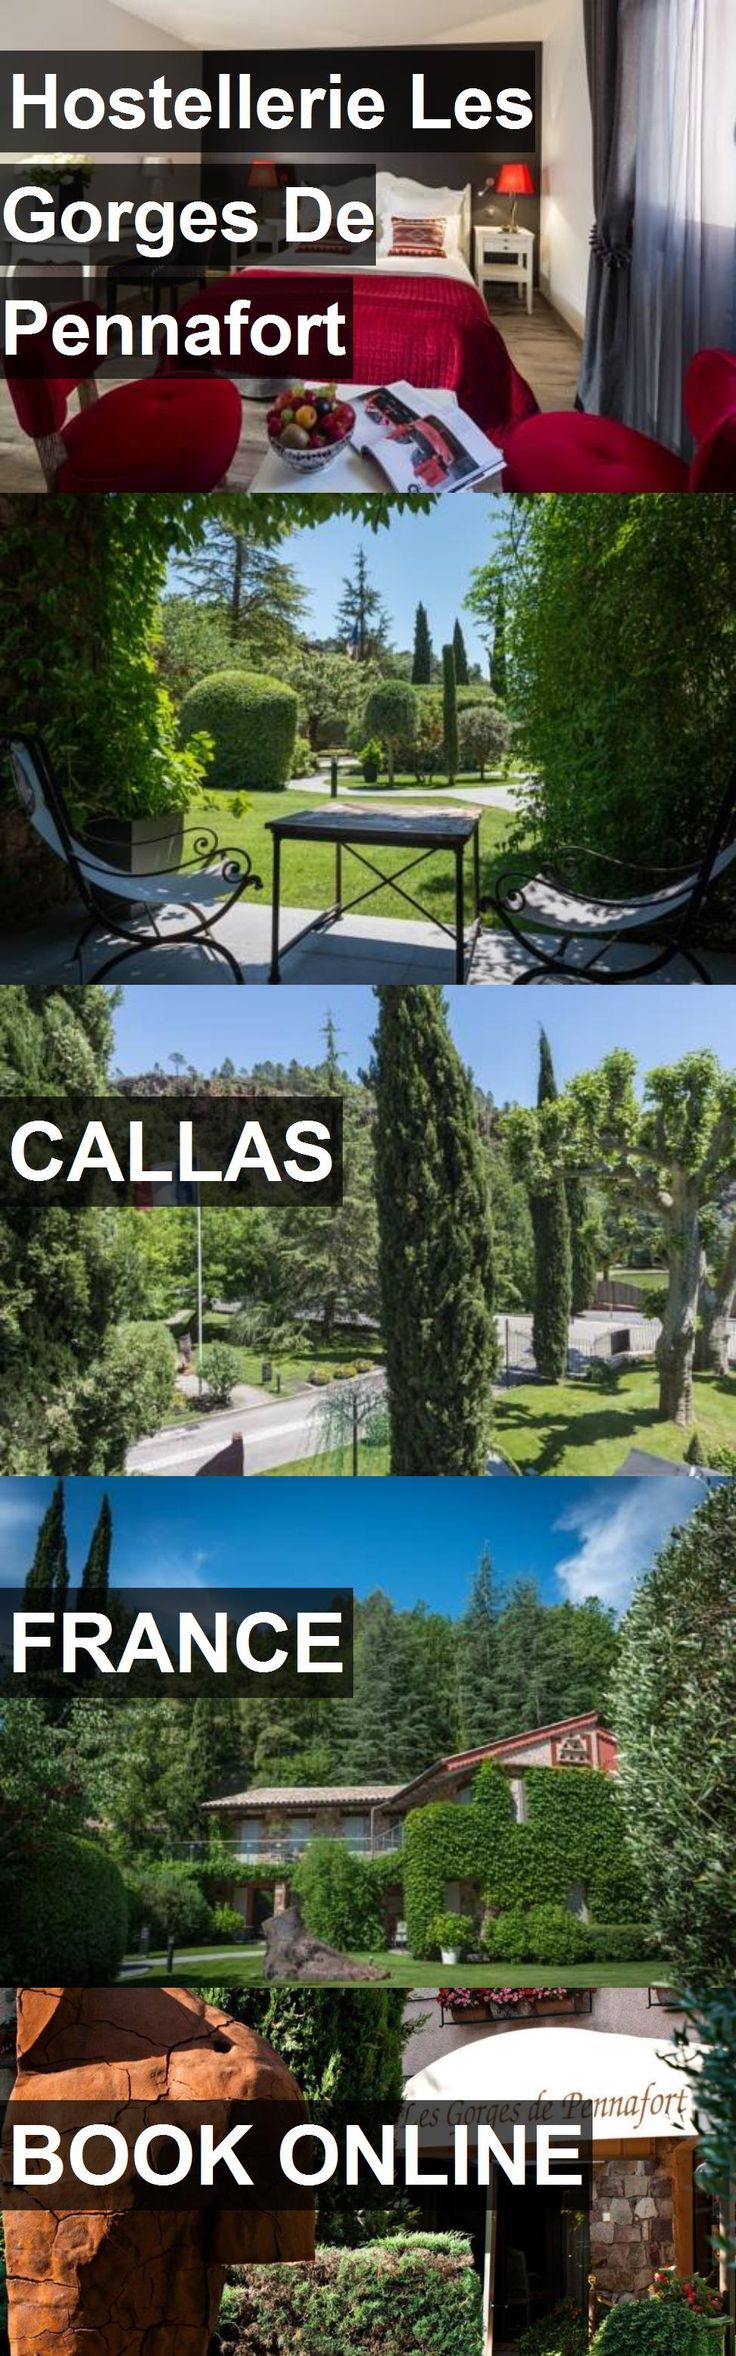 Hotel Hostellerie Les Gorges De Pennafort in Callas, France. For more information, photos, reviews and best prices please follow the link. #France #Callas #HostellerieLesGorgesDePennafort #hotel #travel #vacation